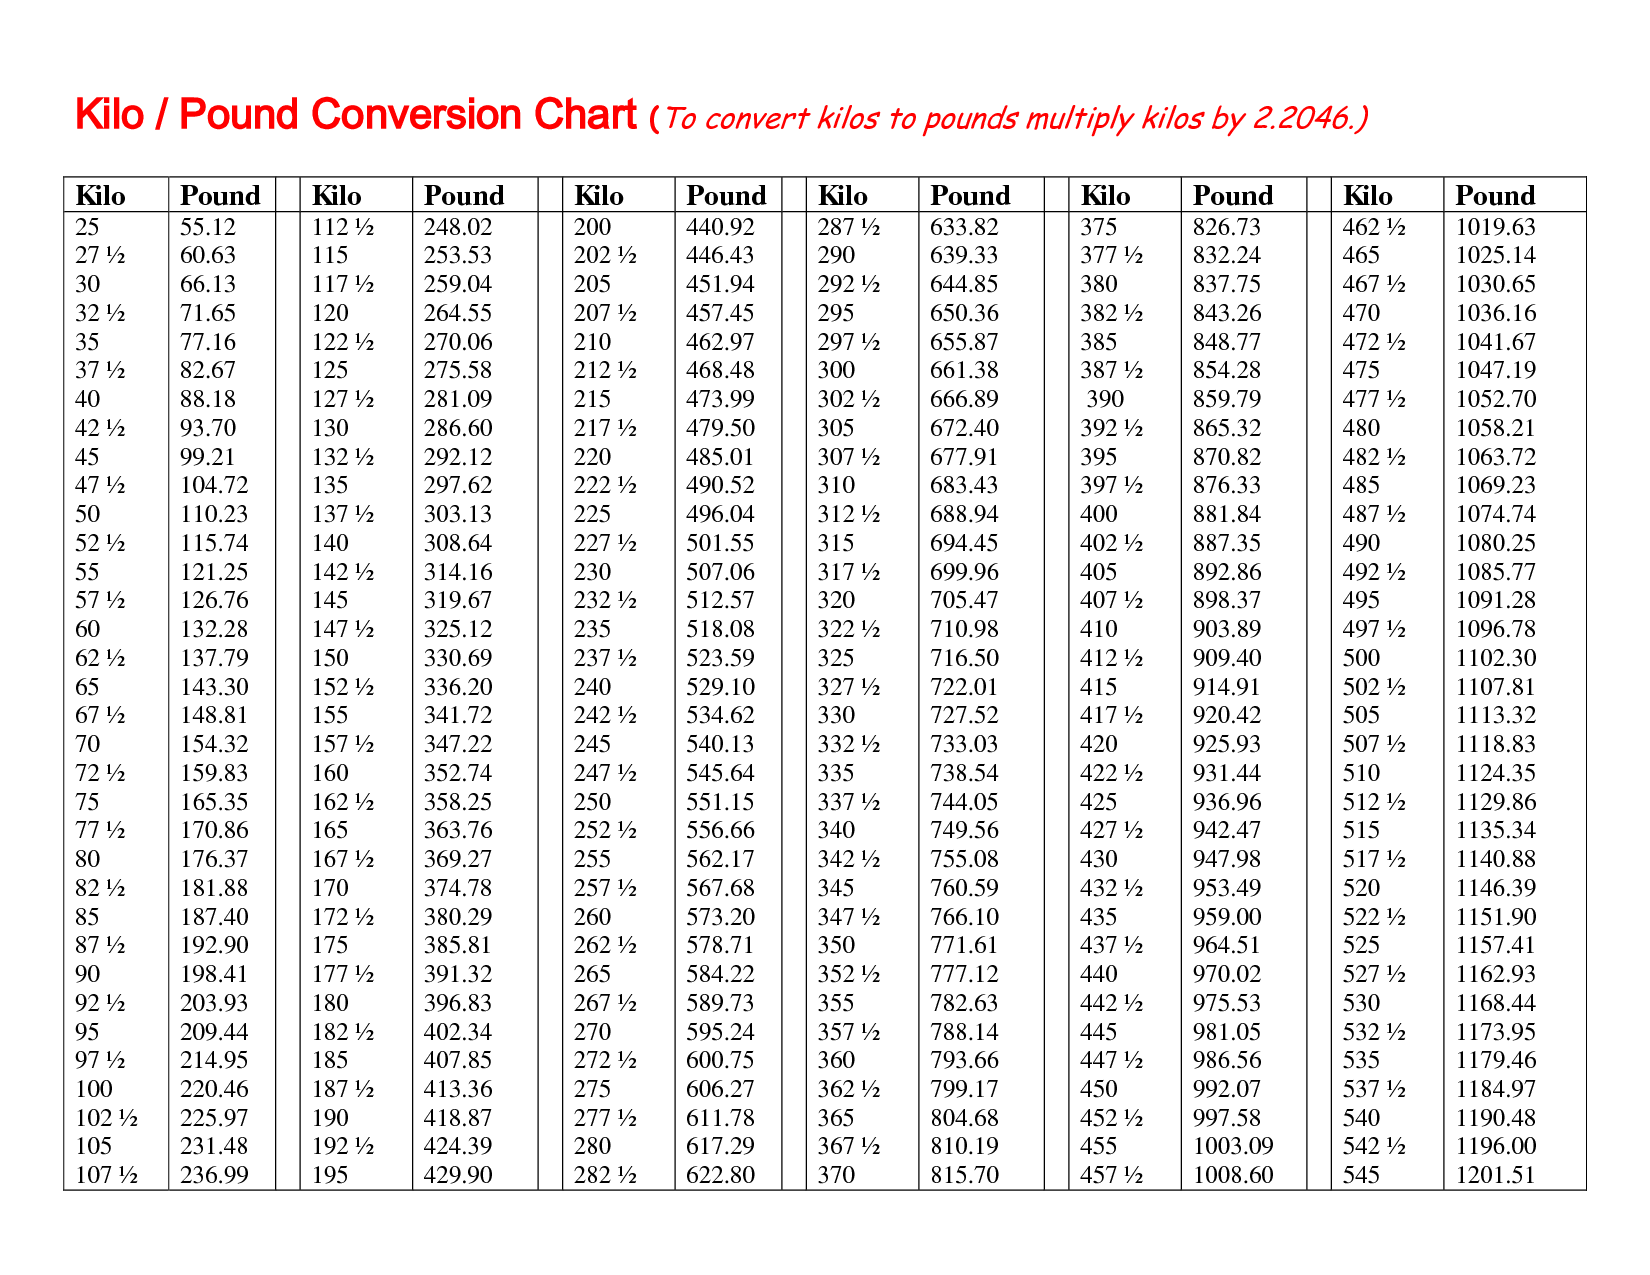 Conversion chart google gallery chart design ideas i thought she would appreciate it 943 kilo 19568226 geenschuldenfo gallery geenschuldenfo Images